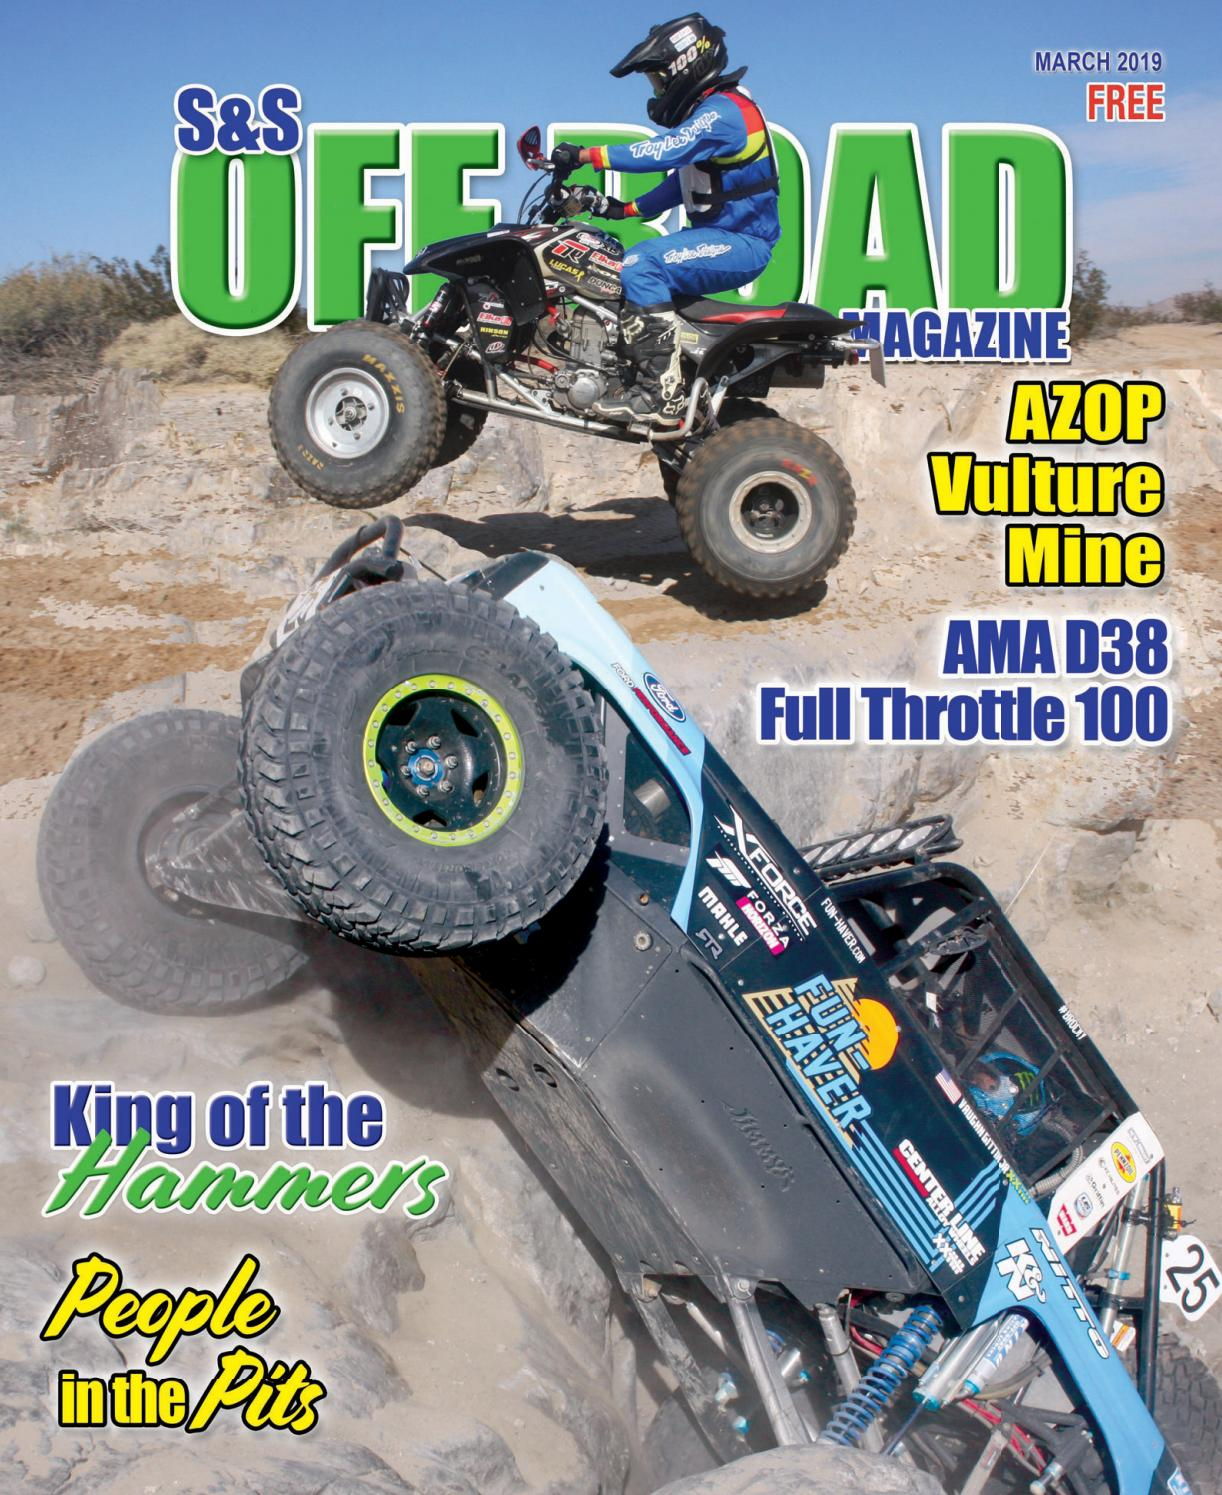 S&S Off Road Magazine March 2019 by S&S Off Road Magazine